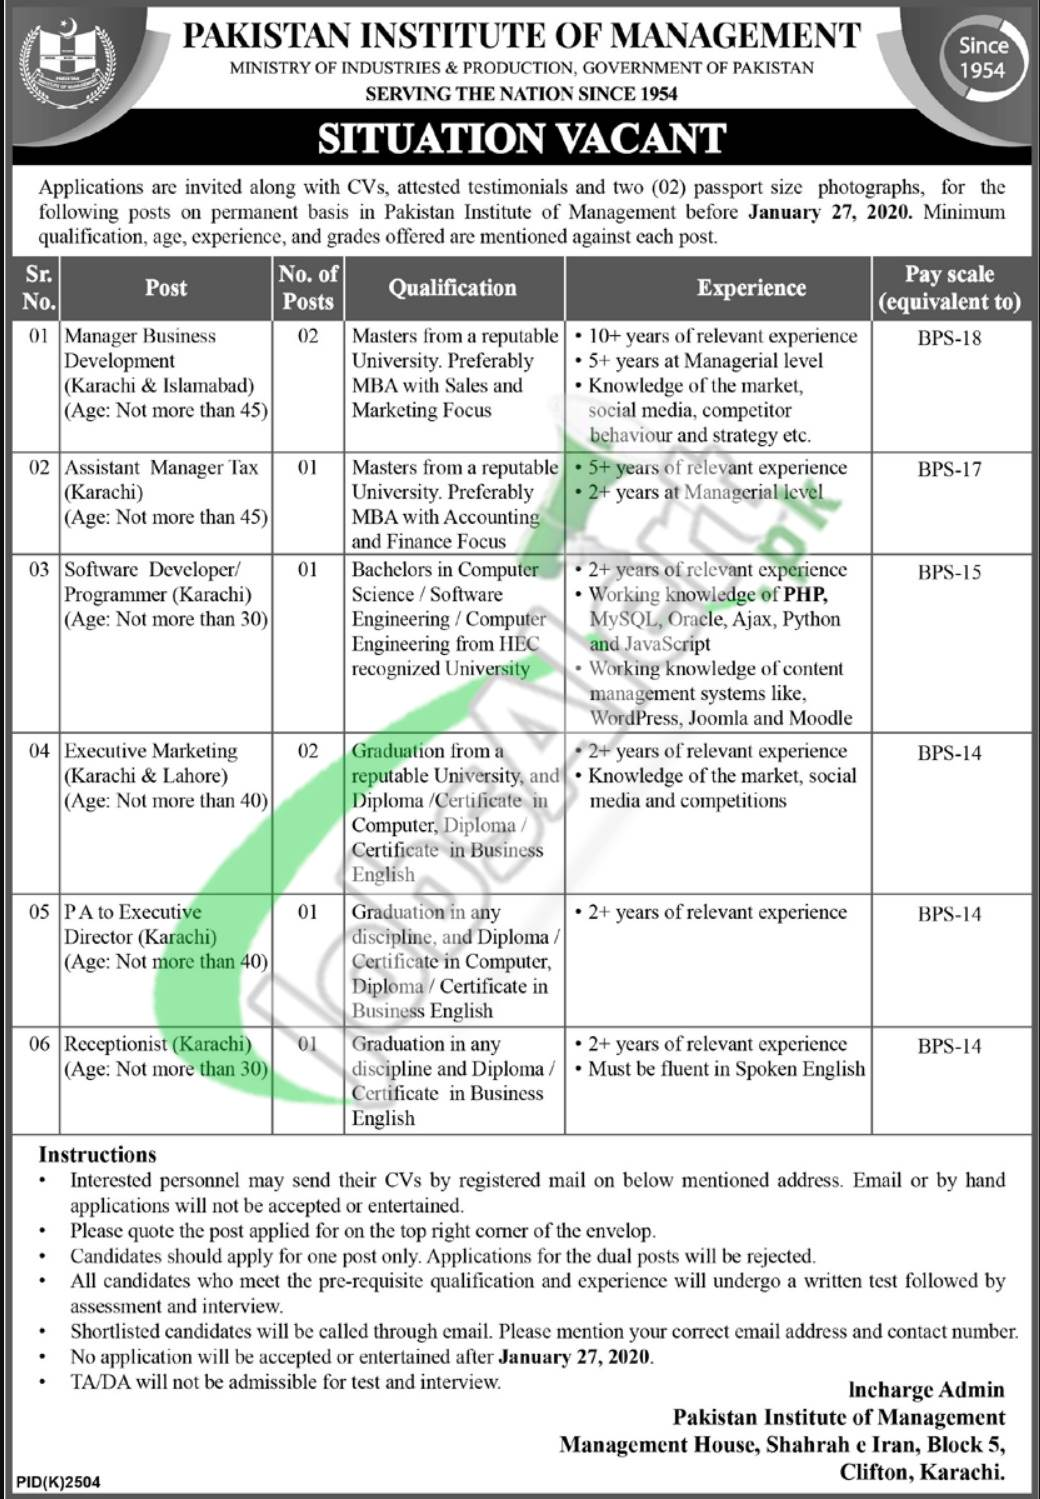 Pakistan Institute of Management Situation Vacant